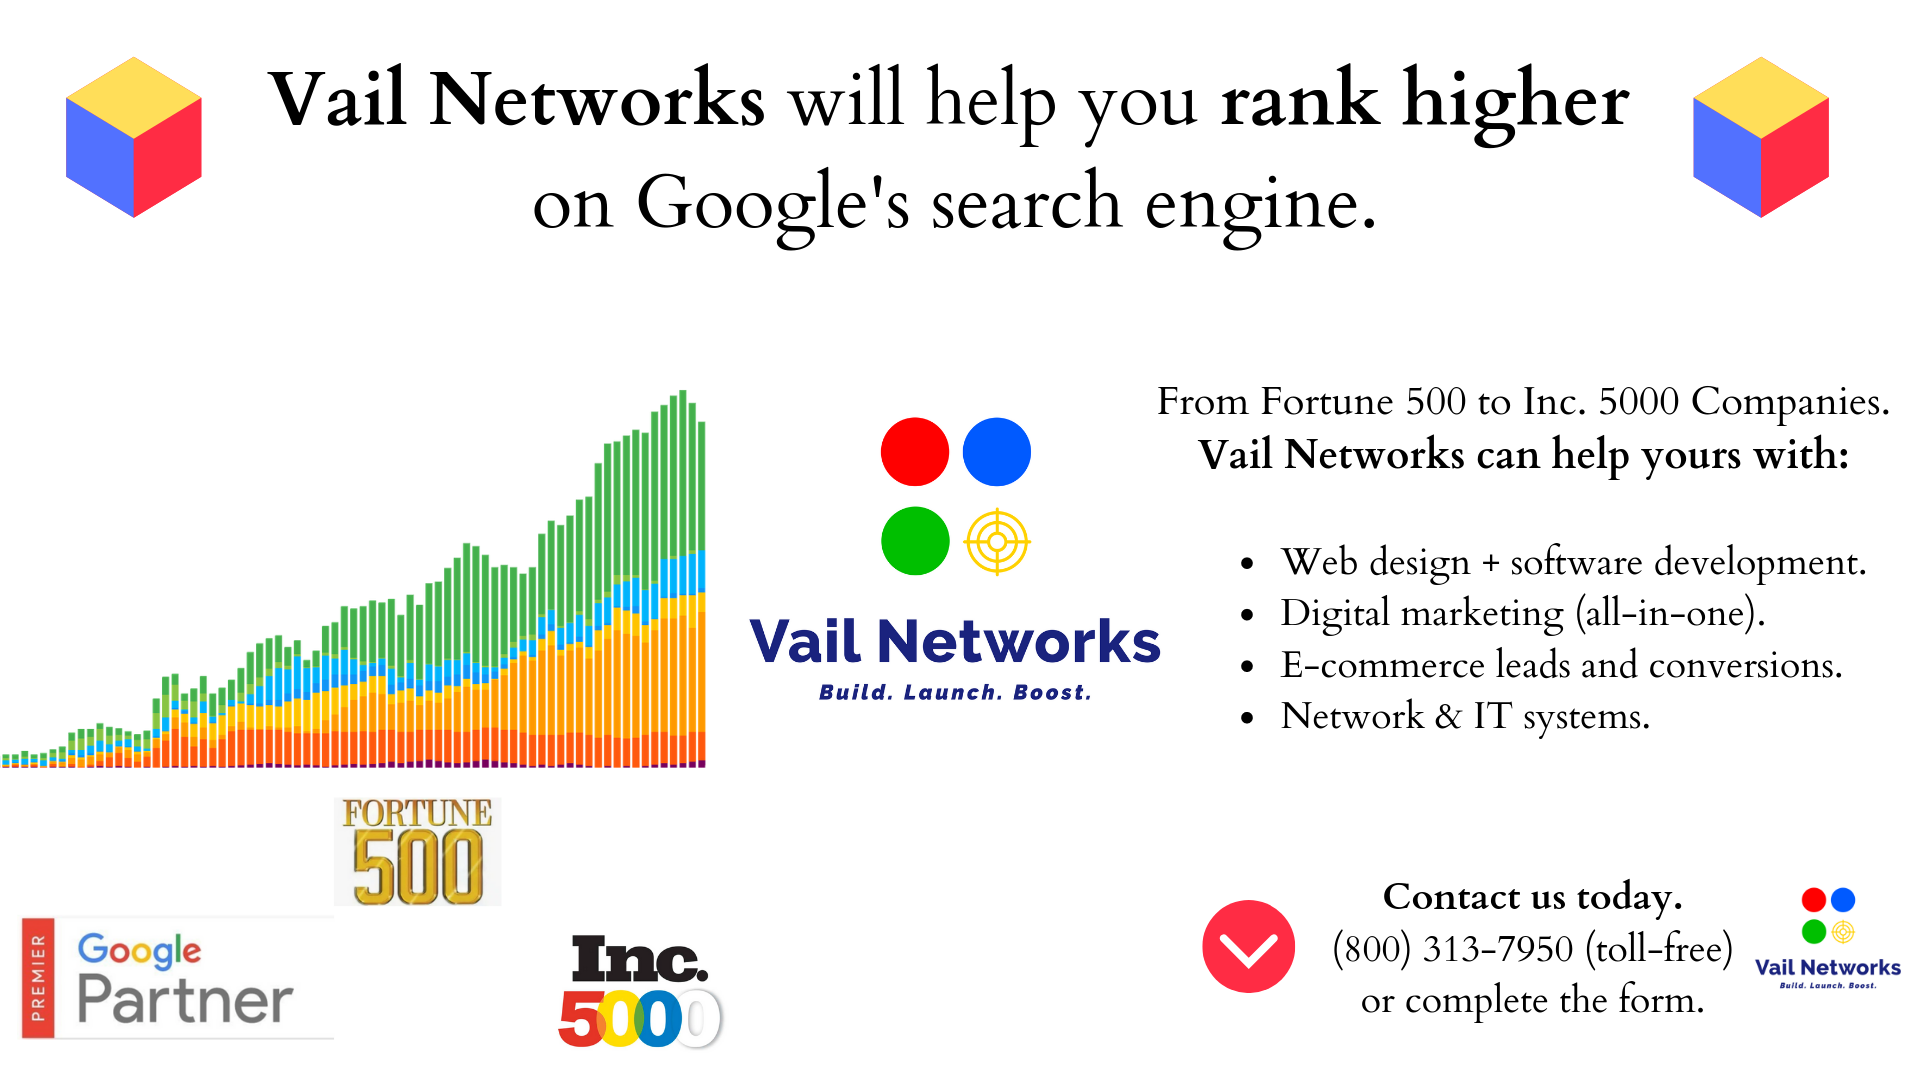 company to help you rank higher on google search: vailnetworks.com